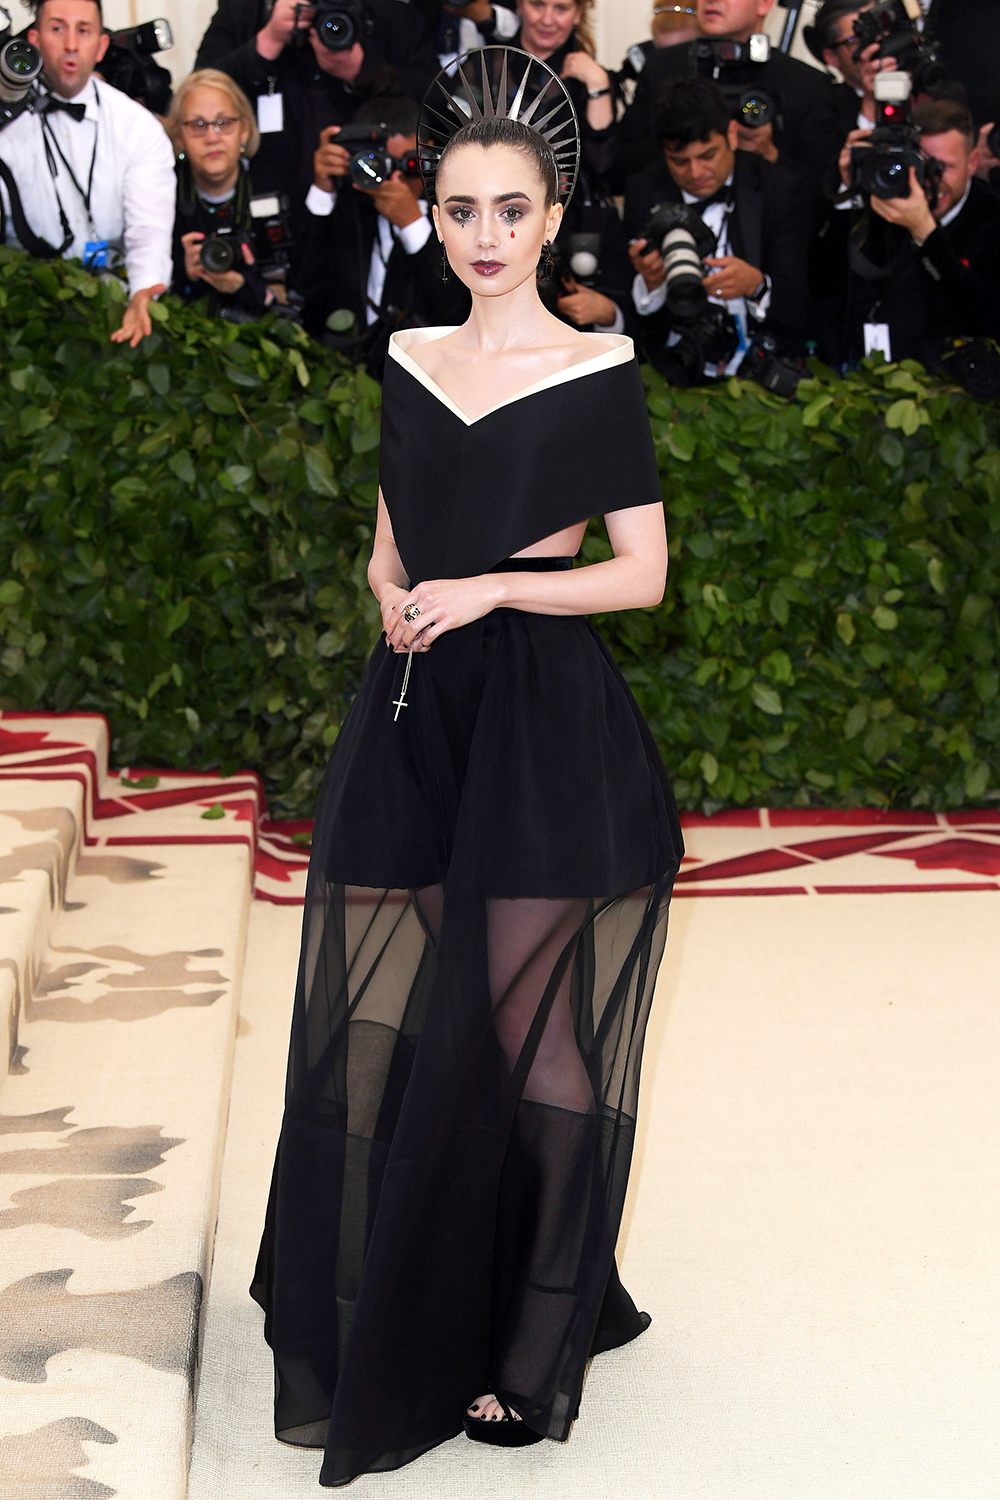 2018 Met Gala Red Carpet I Lily Collins in Givenchy #MetGala #LilyCollins